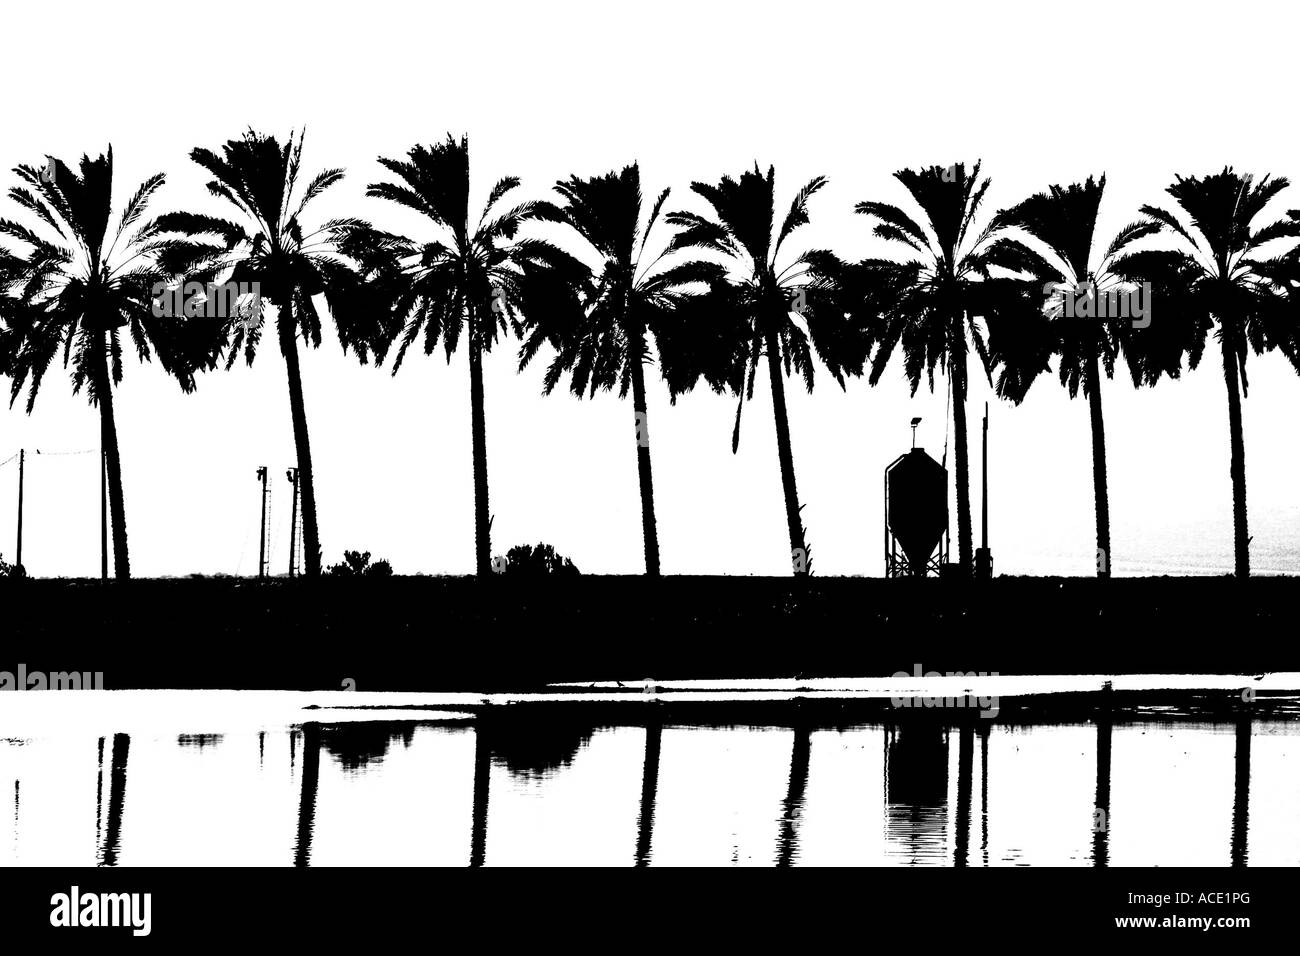 Israel Galilee silhouette of palm trees with a Fish breeding pool in the foreground in black and white - Stock Image